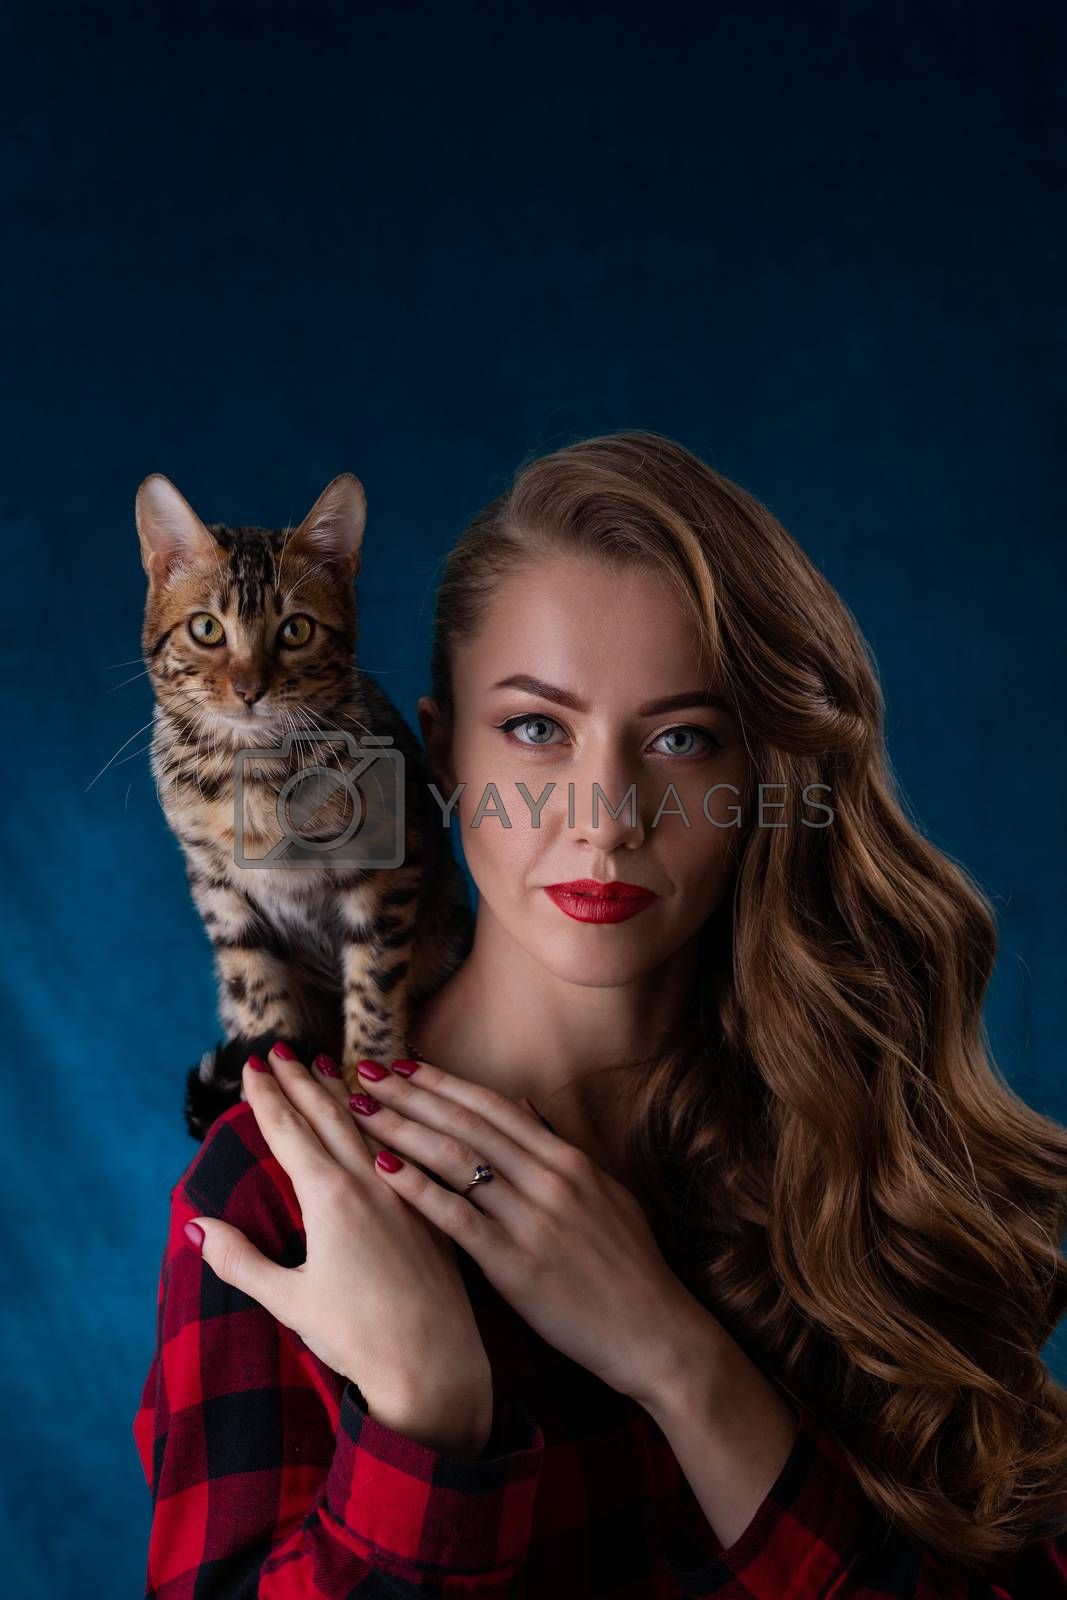 Fashion photo of pretty girl with bengal kitten on shoulder. Bengal cat with beautiful woman on  blue background. Girl and kitten seductively looks at the viewer.